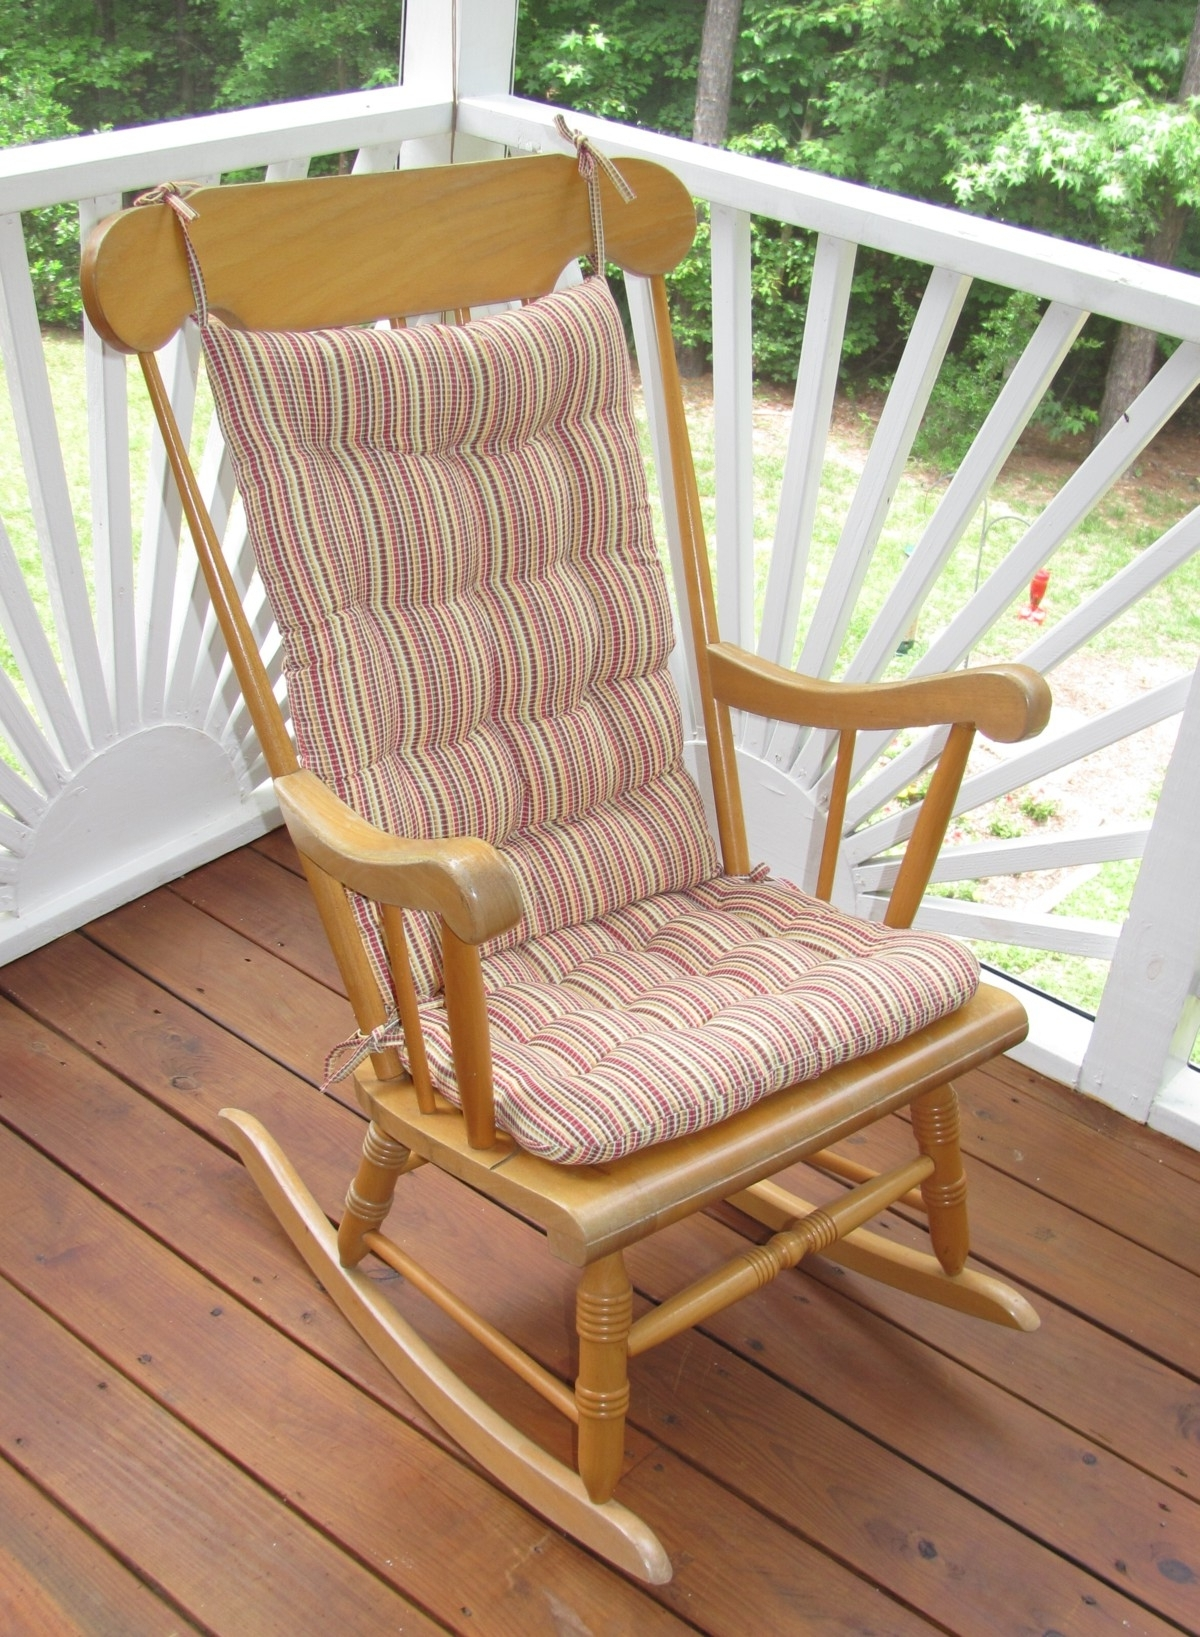 Outdoor Rocking Chair Cushions Type : Beautiful Outdoor Rocking With Current Outdoor Rocking Chairs With Cushions (View 5 of 15)